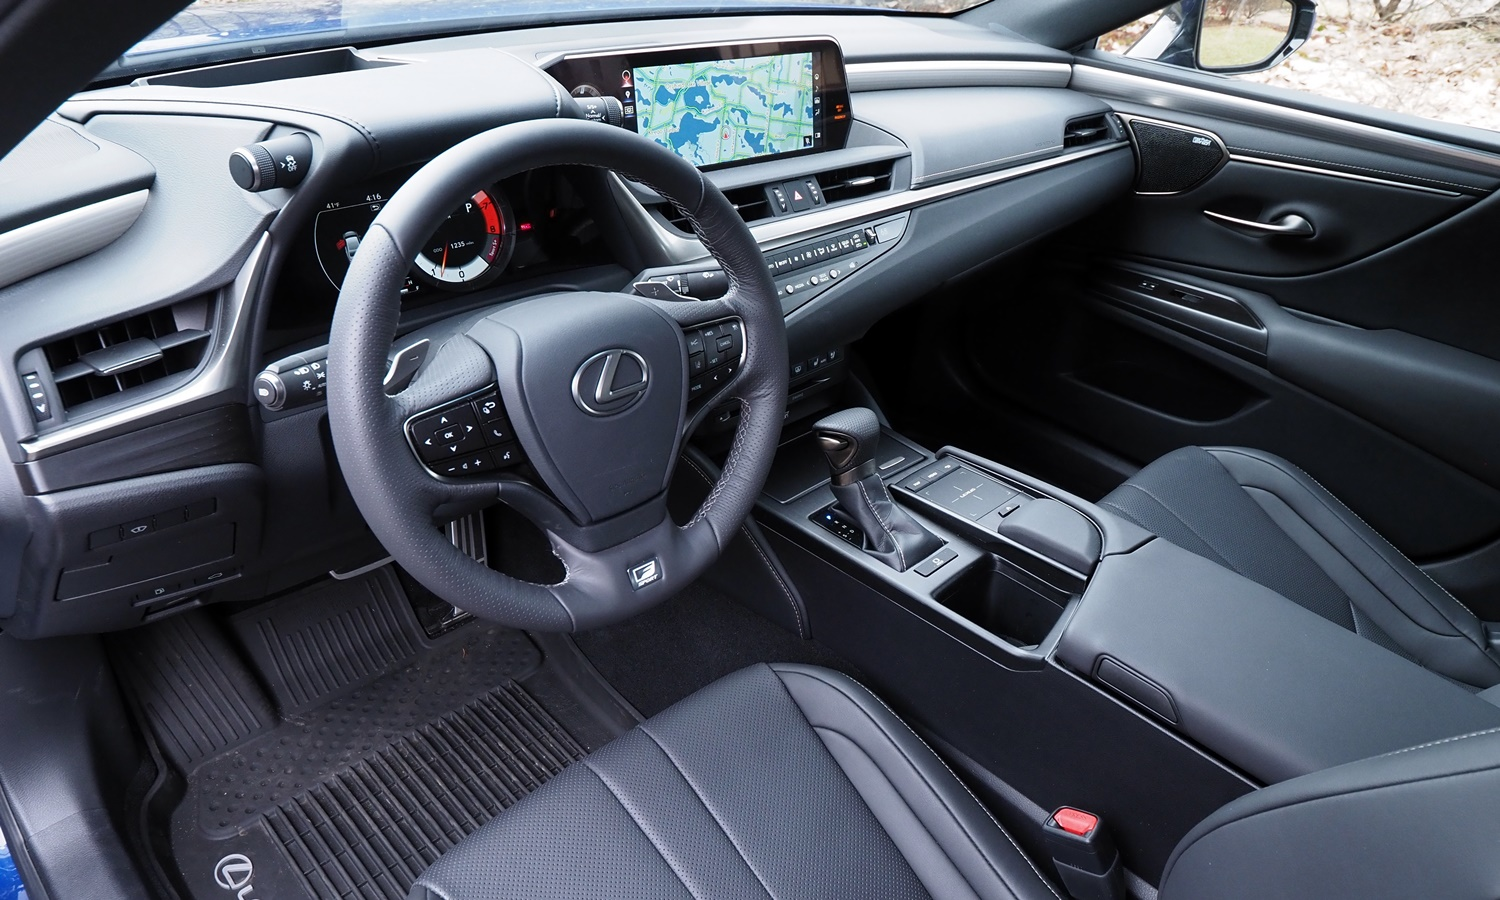 ES Reviews: Lexus ES 350 F Sport interior